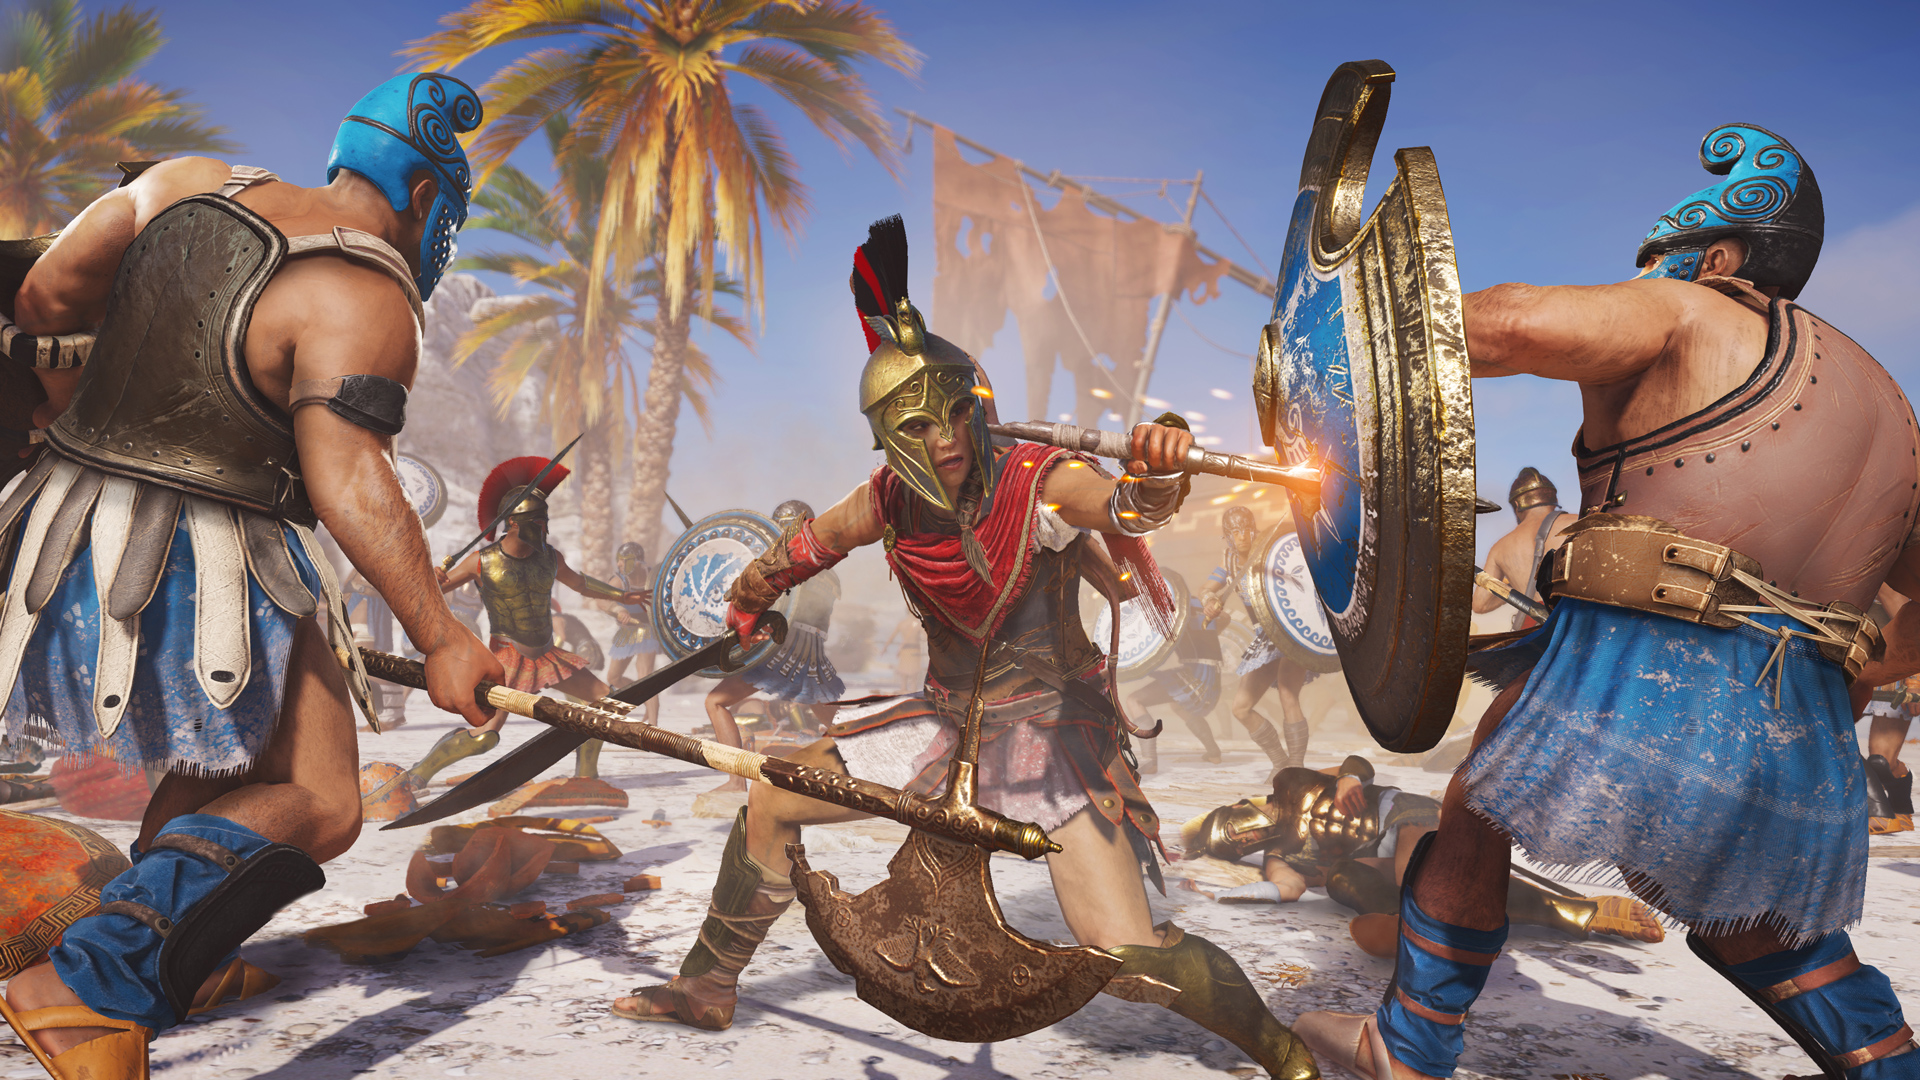 How to get games for xenia | Assassin's Creed Odyssey  2019-03-23